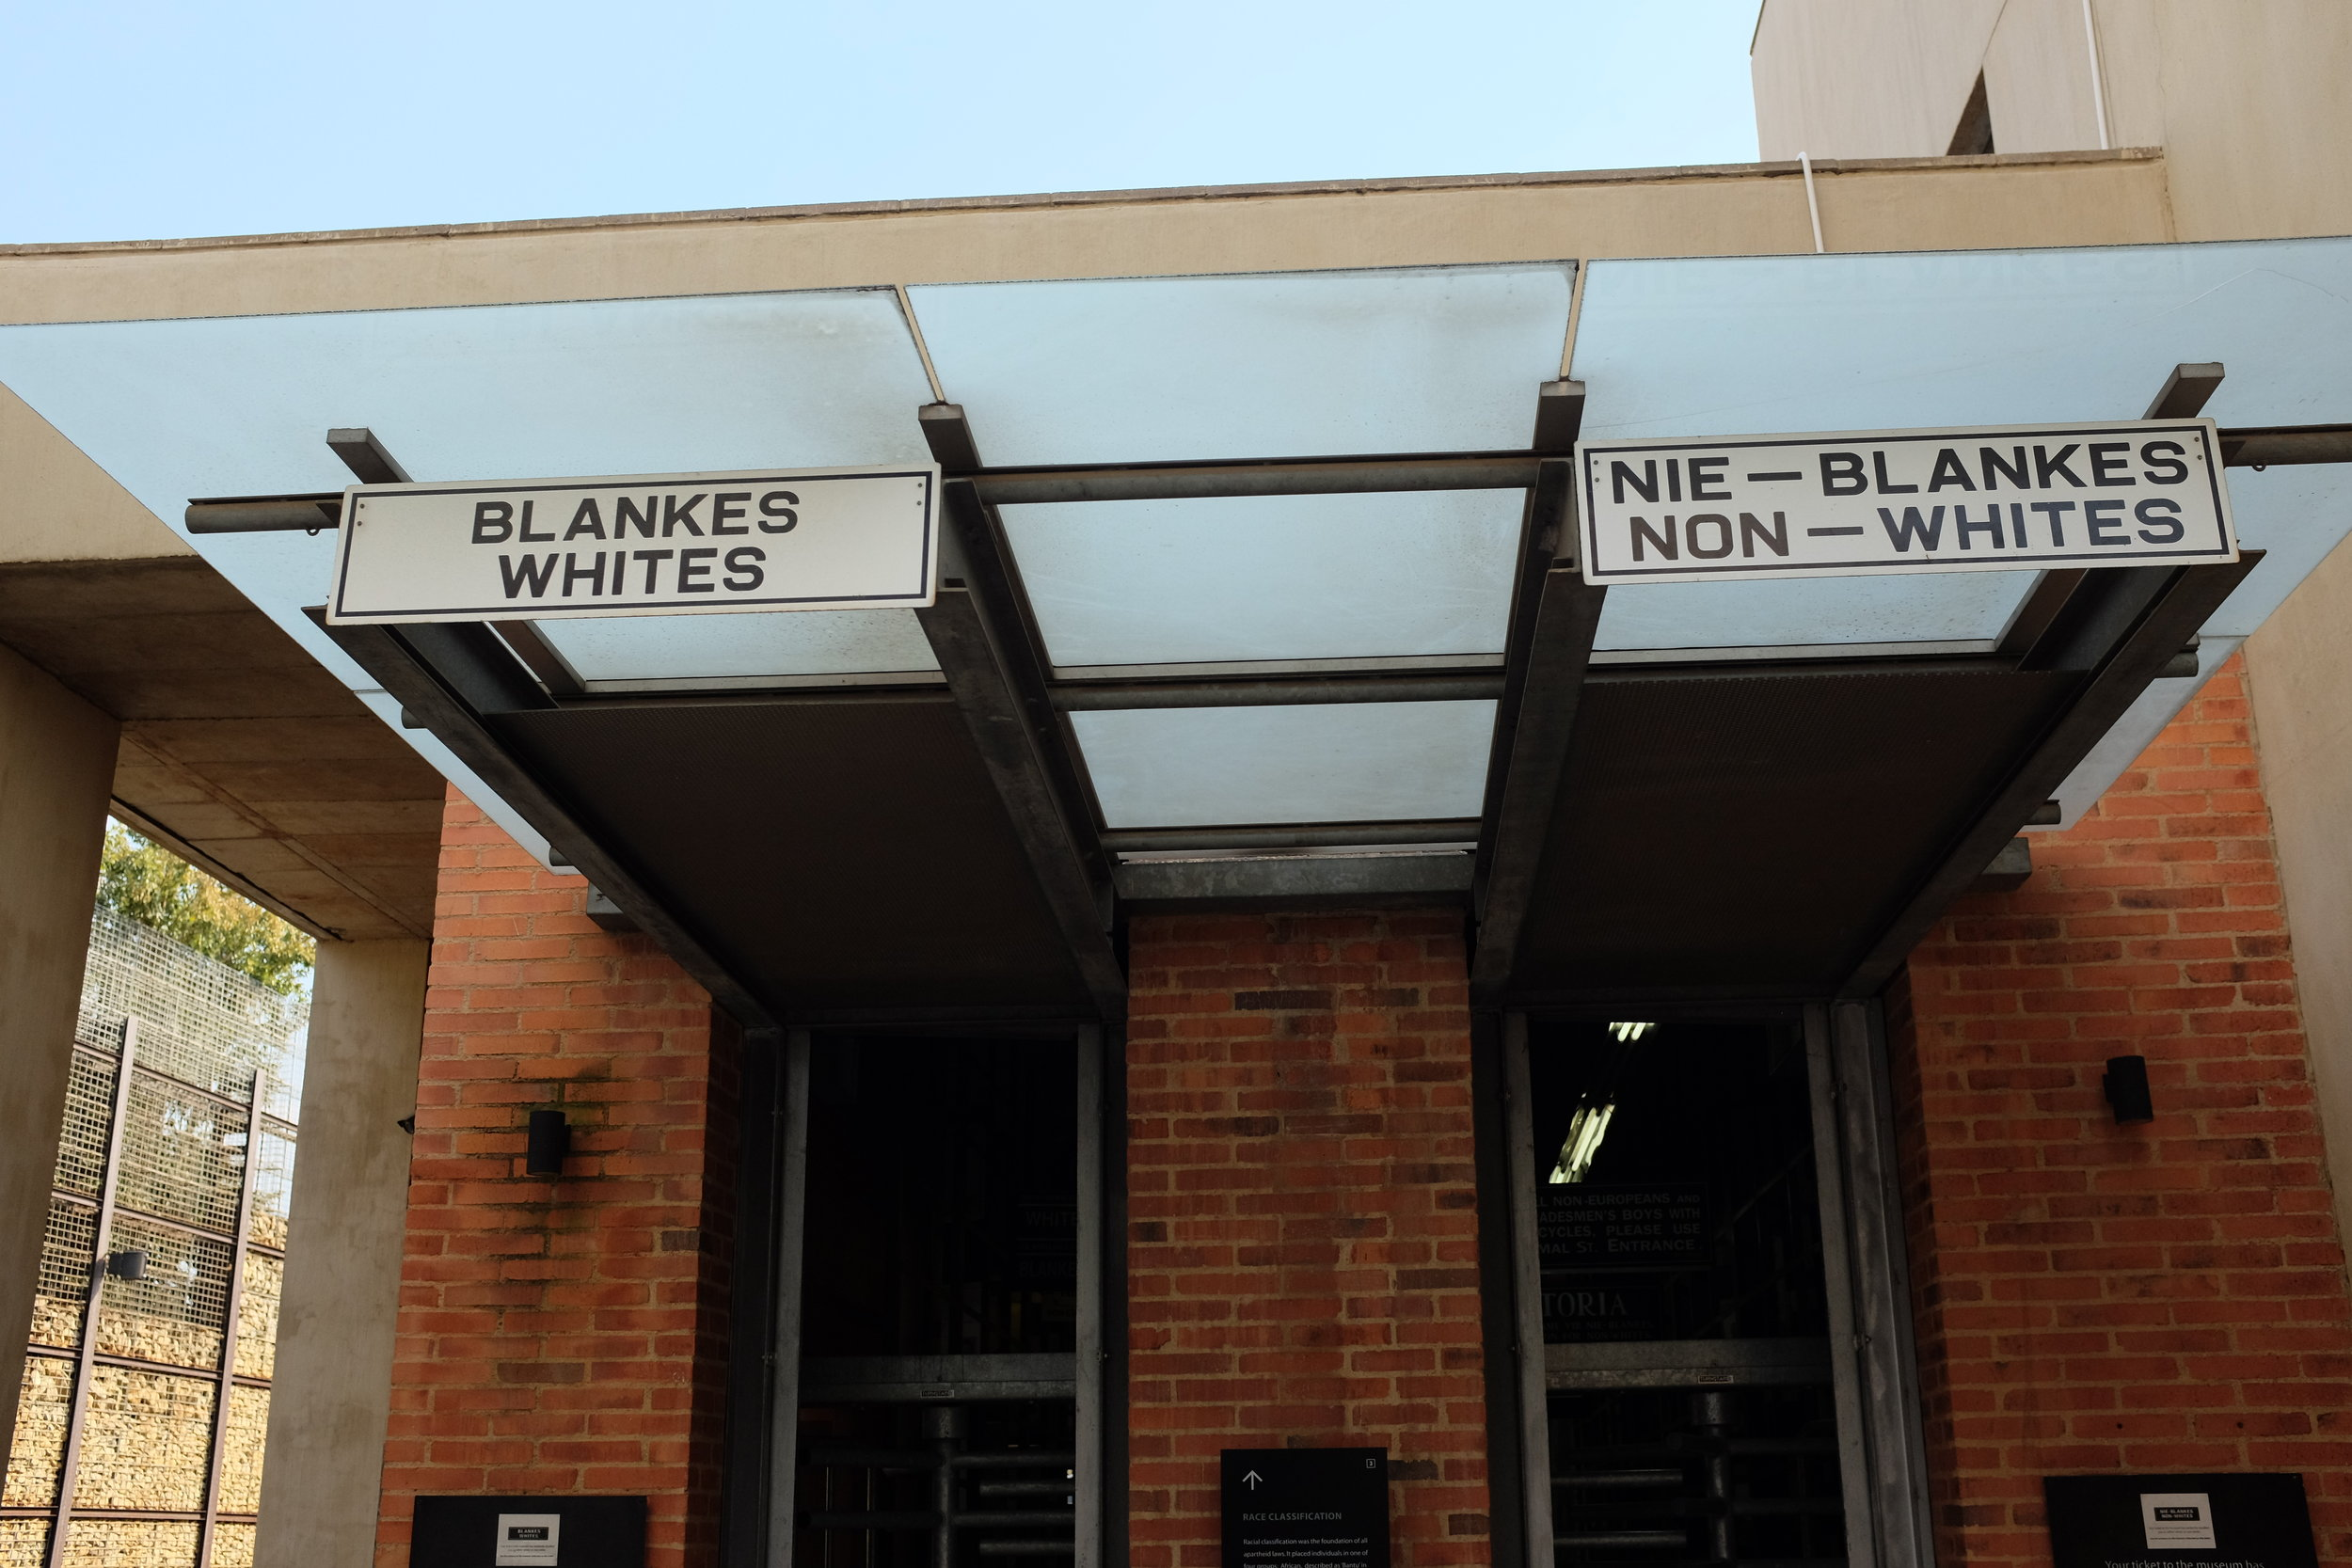 "Only spent a day in Johannesburg, just enough time to take a quick tour of the city and go to the excellent Apartheid Museum. At the ticket booth, you are issued a tag printed with either ""White"" or ""Non-Whites."" Enter the corresponding door, and you get a glimpse of the different experiences awaiting various groups in South Africa."